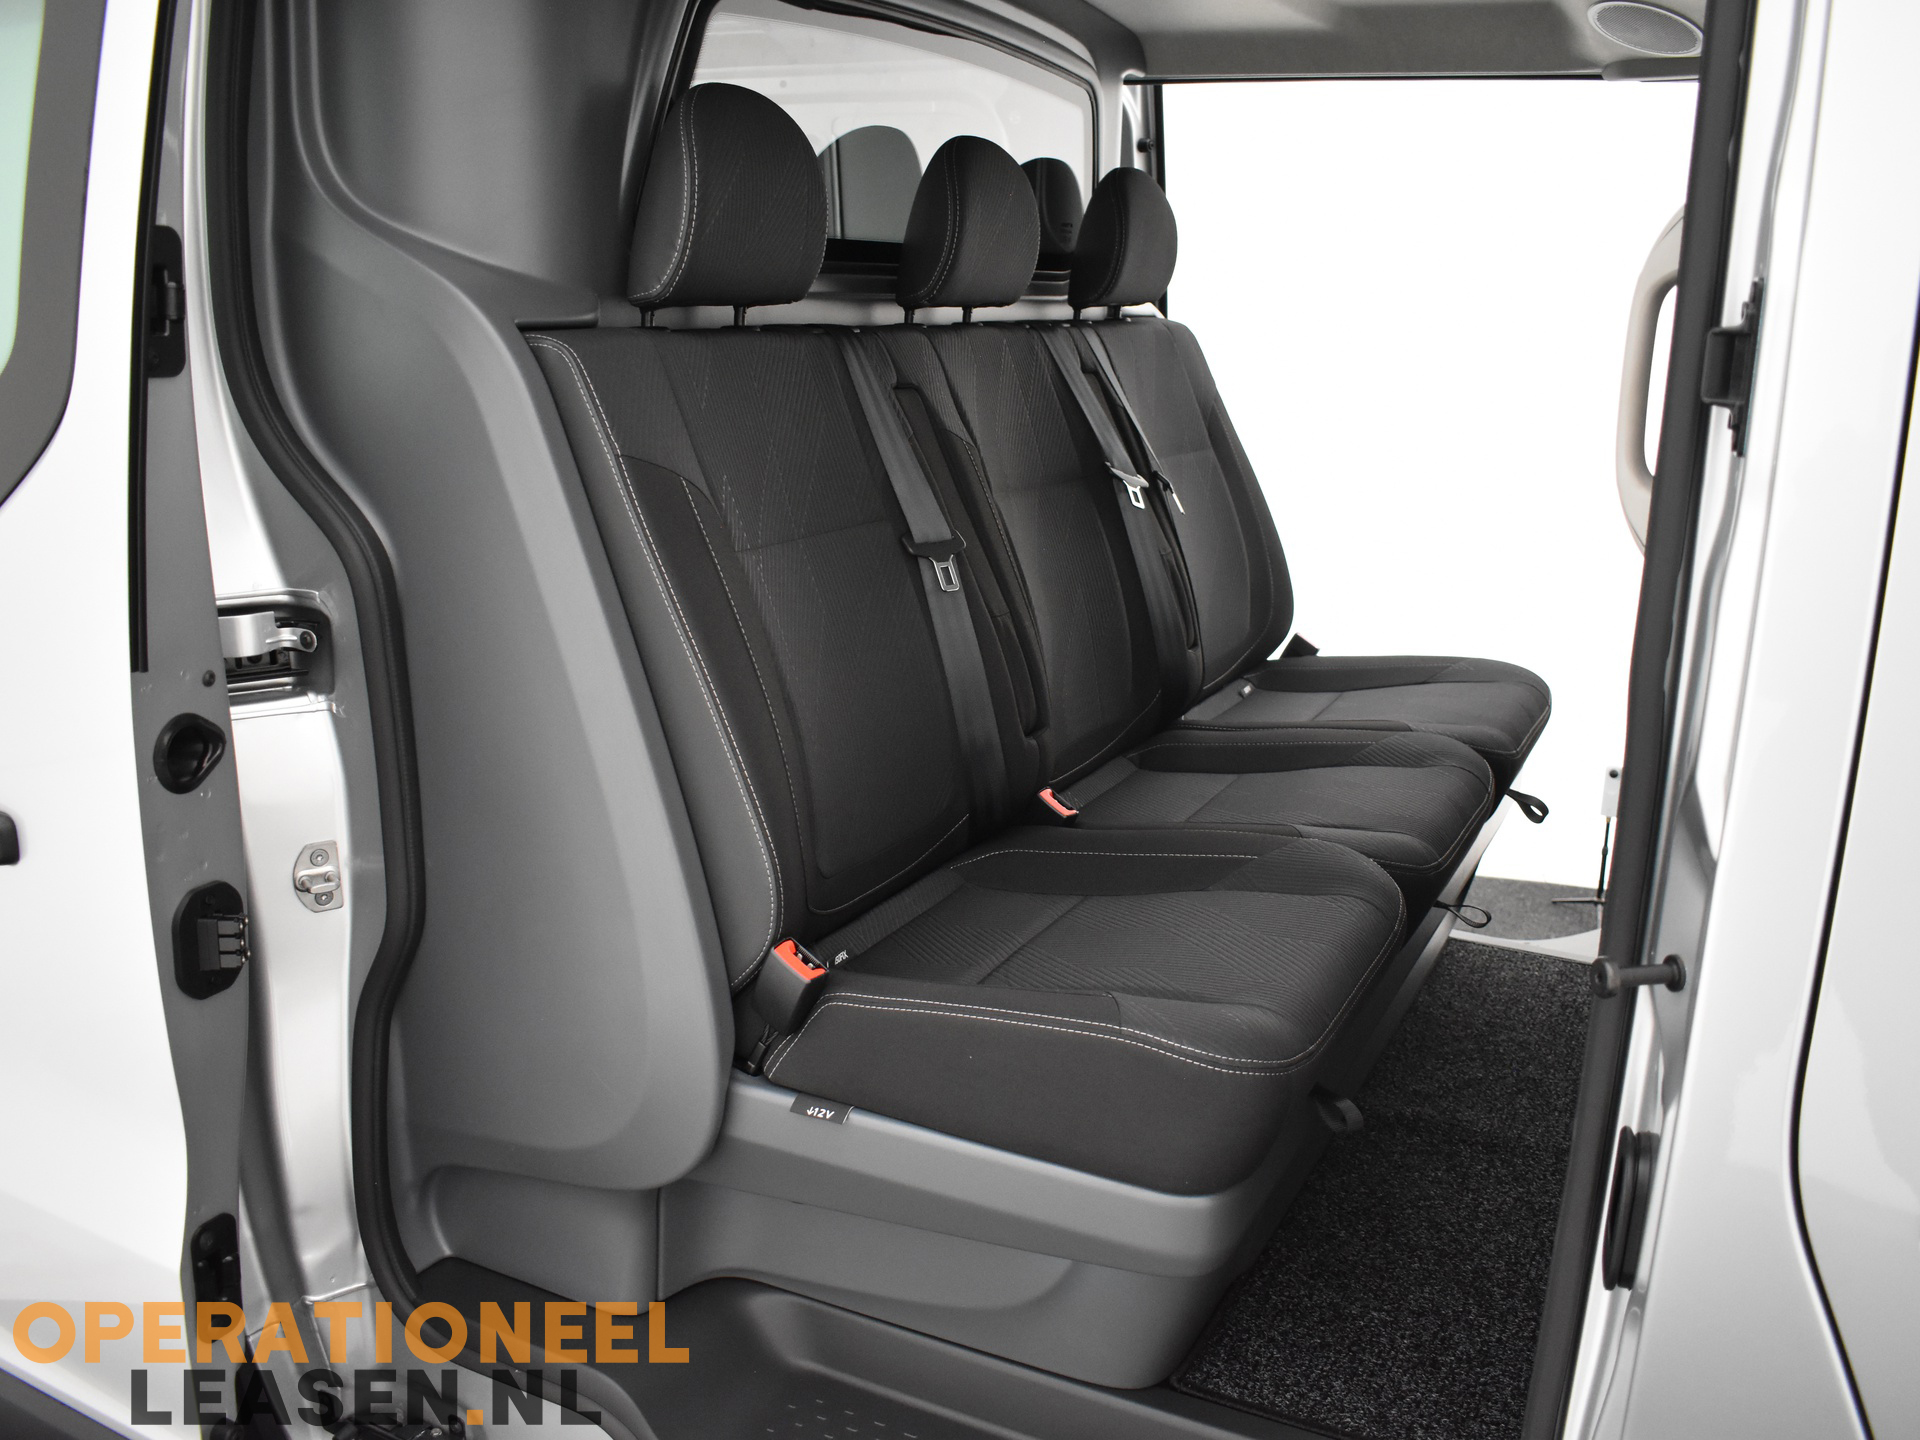 Operational lease Renault master traffic-24